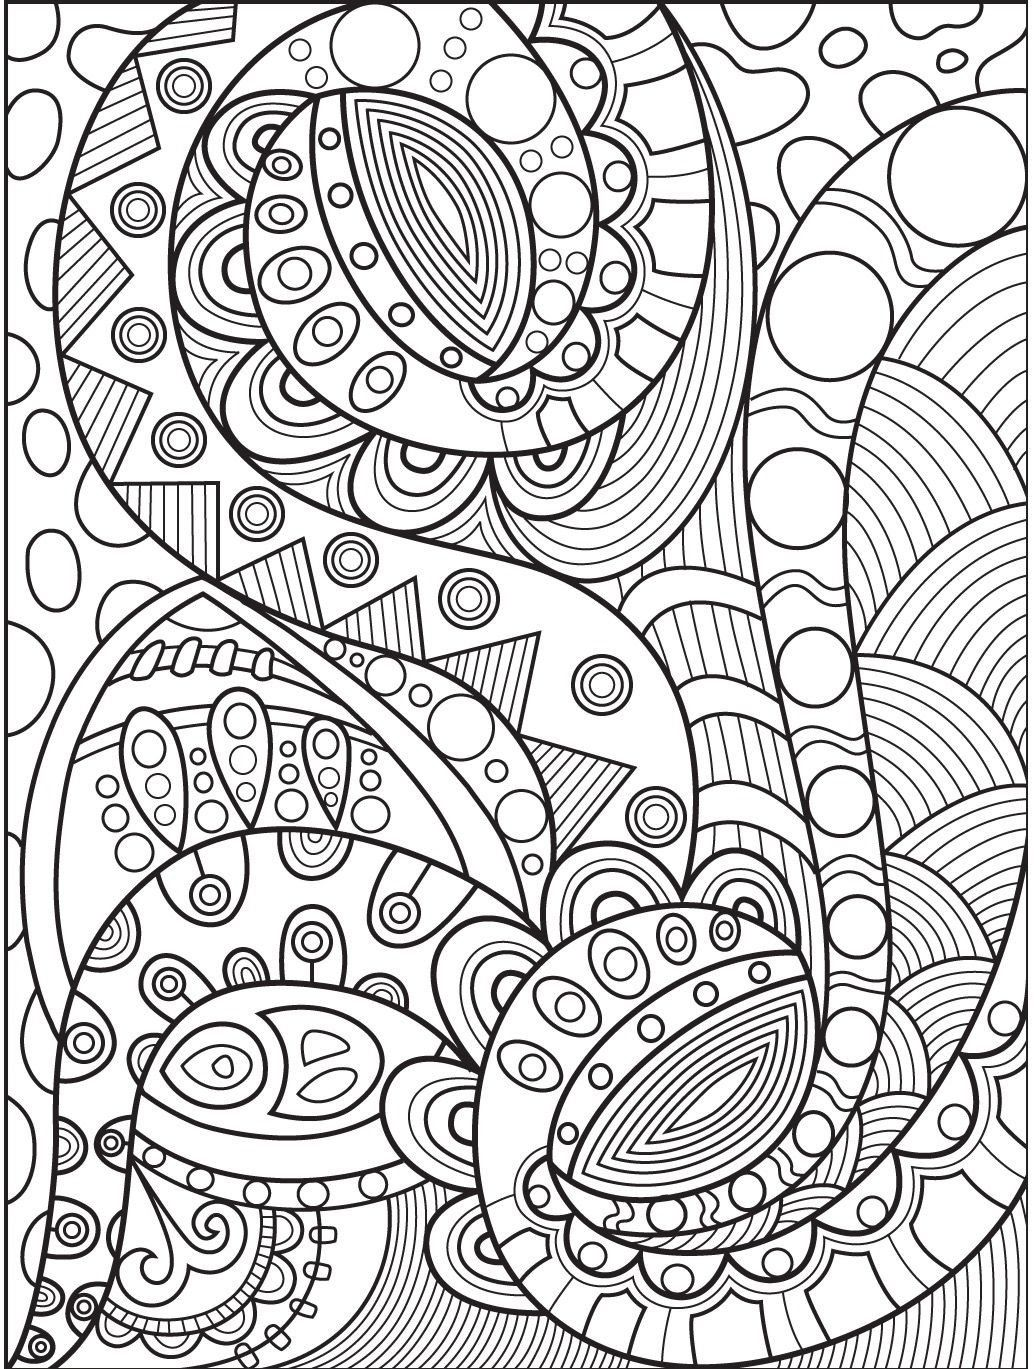 Abstract Coloring Books For Adults Abstract Coloring Page On Colorish Coloring Book App For In 2020 Abstract Coloring Pages Coloring Books Mandala Coloring Pages